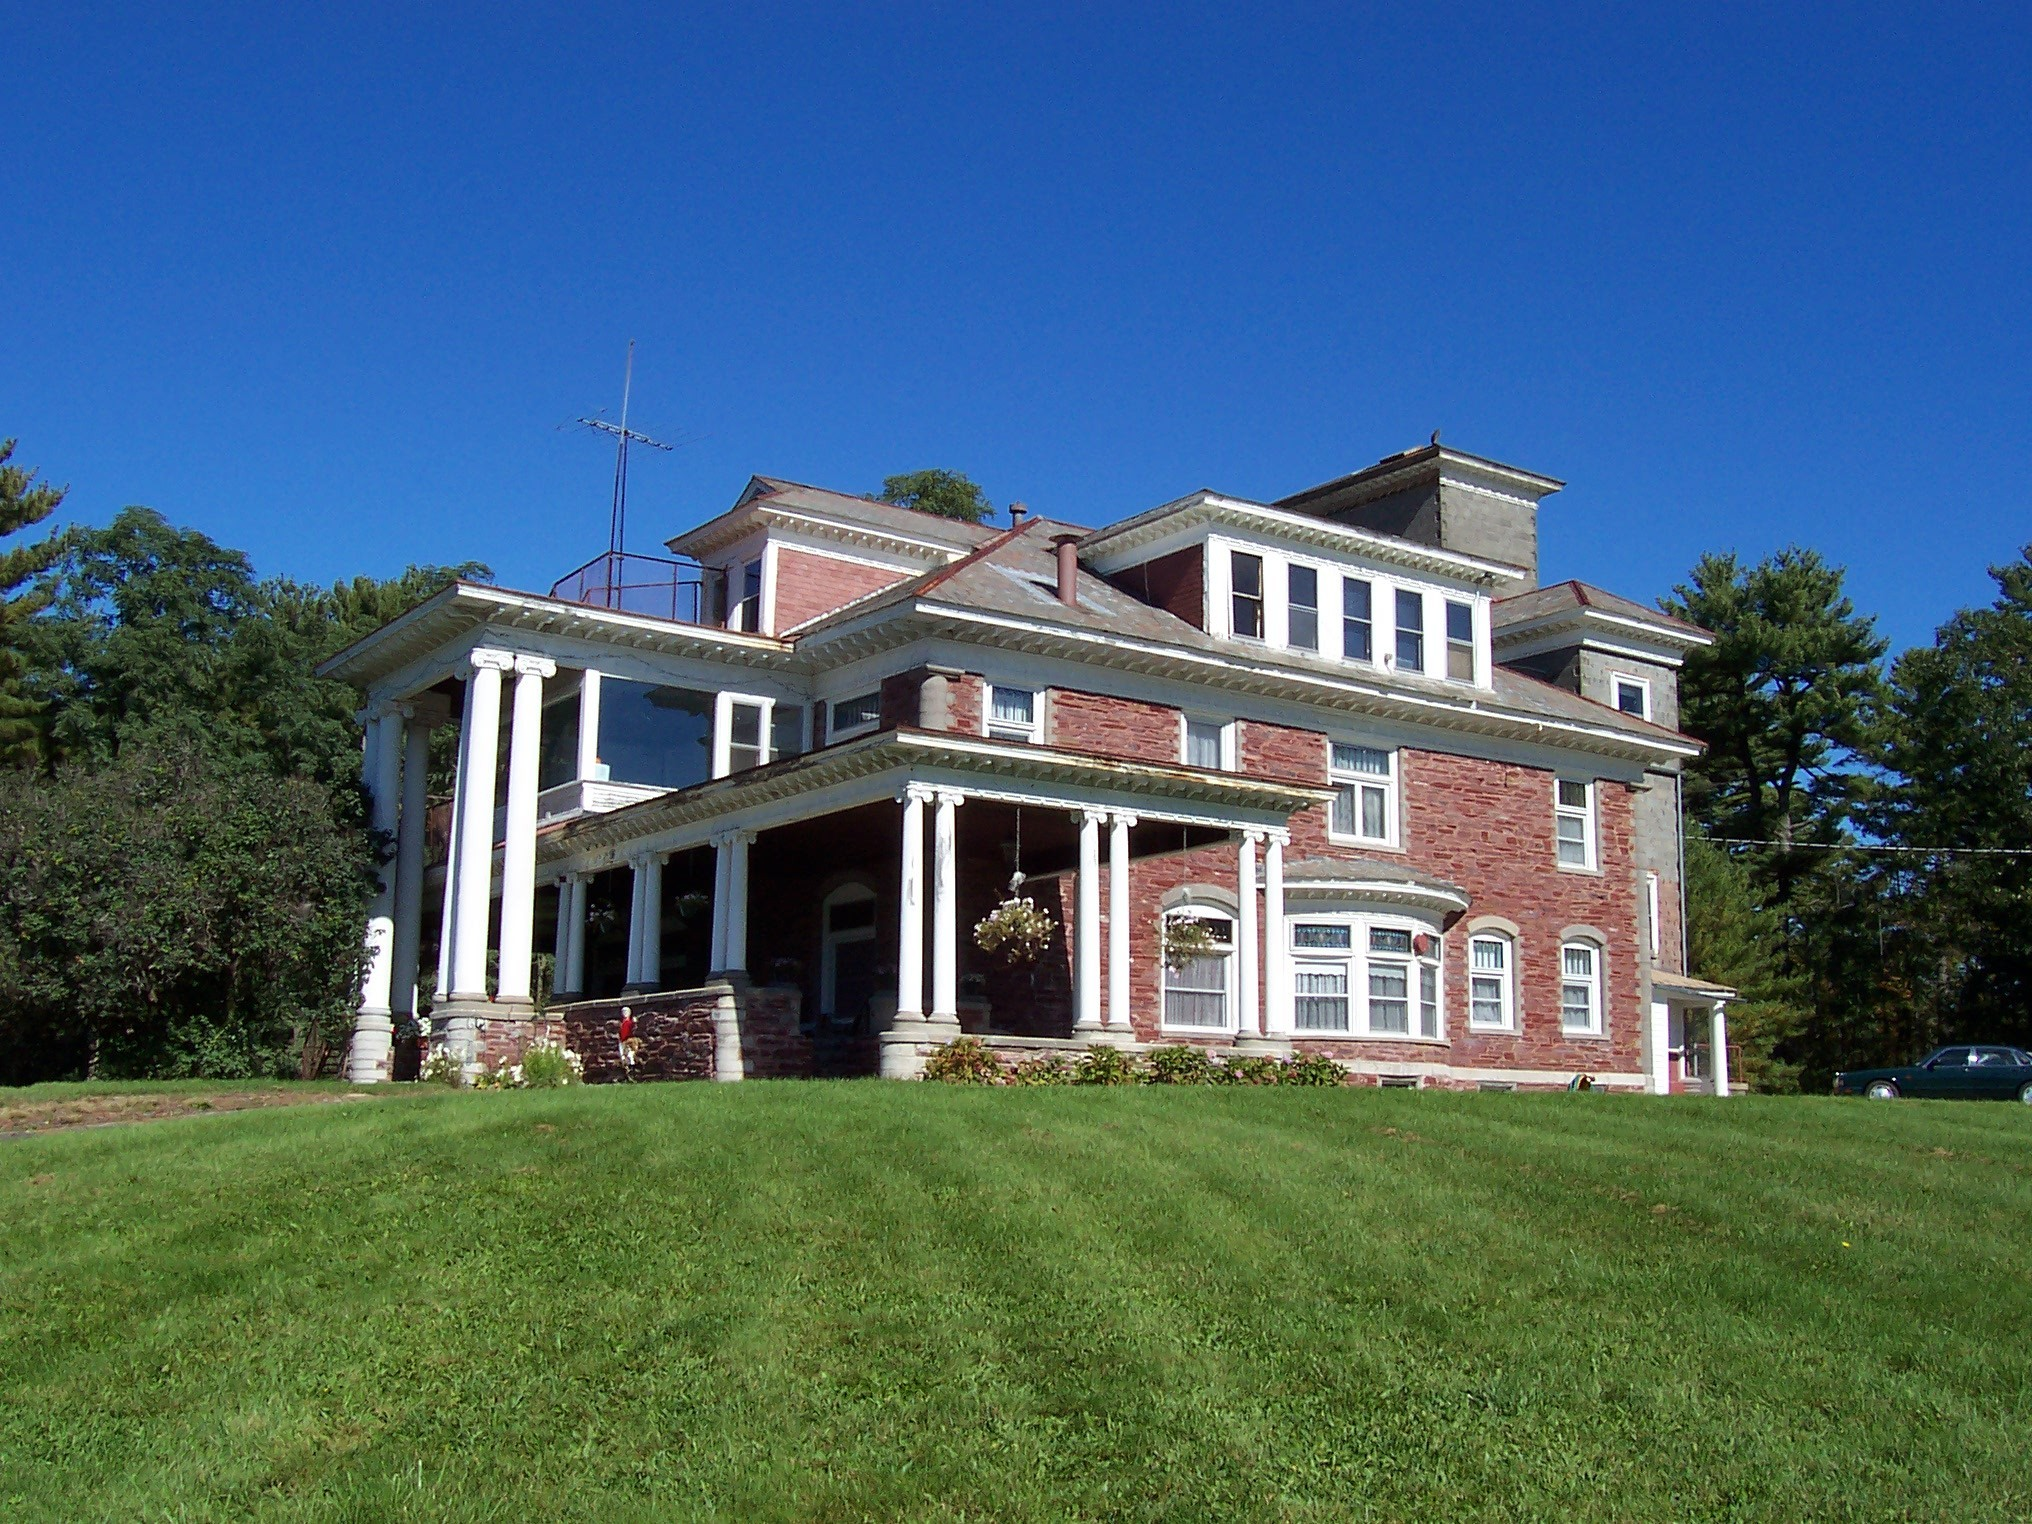 The Sheldon Mansion, An Historic Inn, Bed and Breakfast